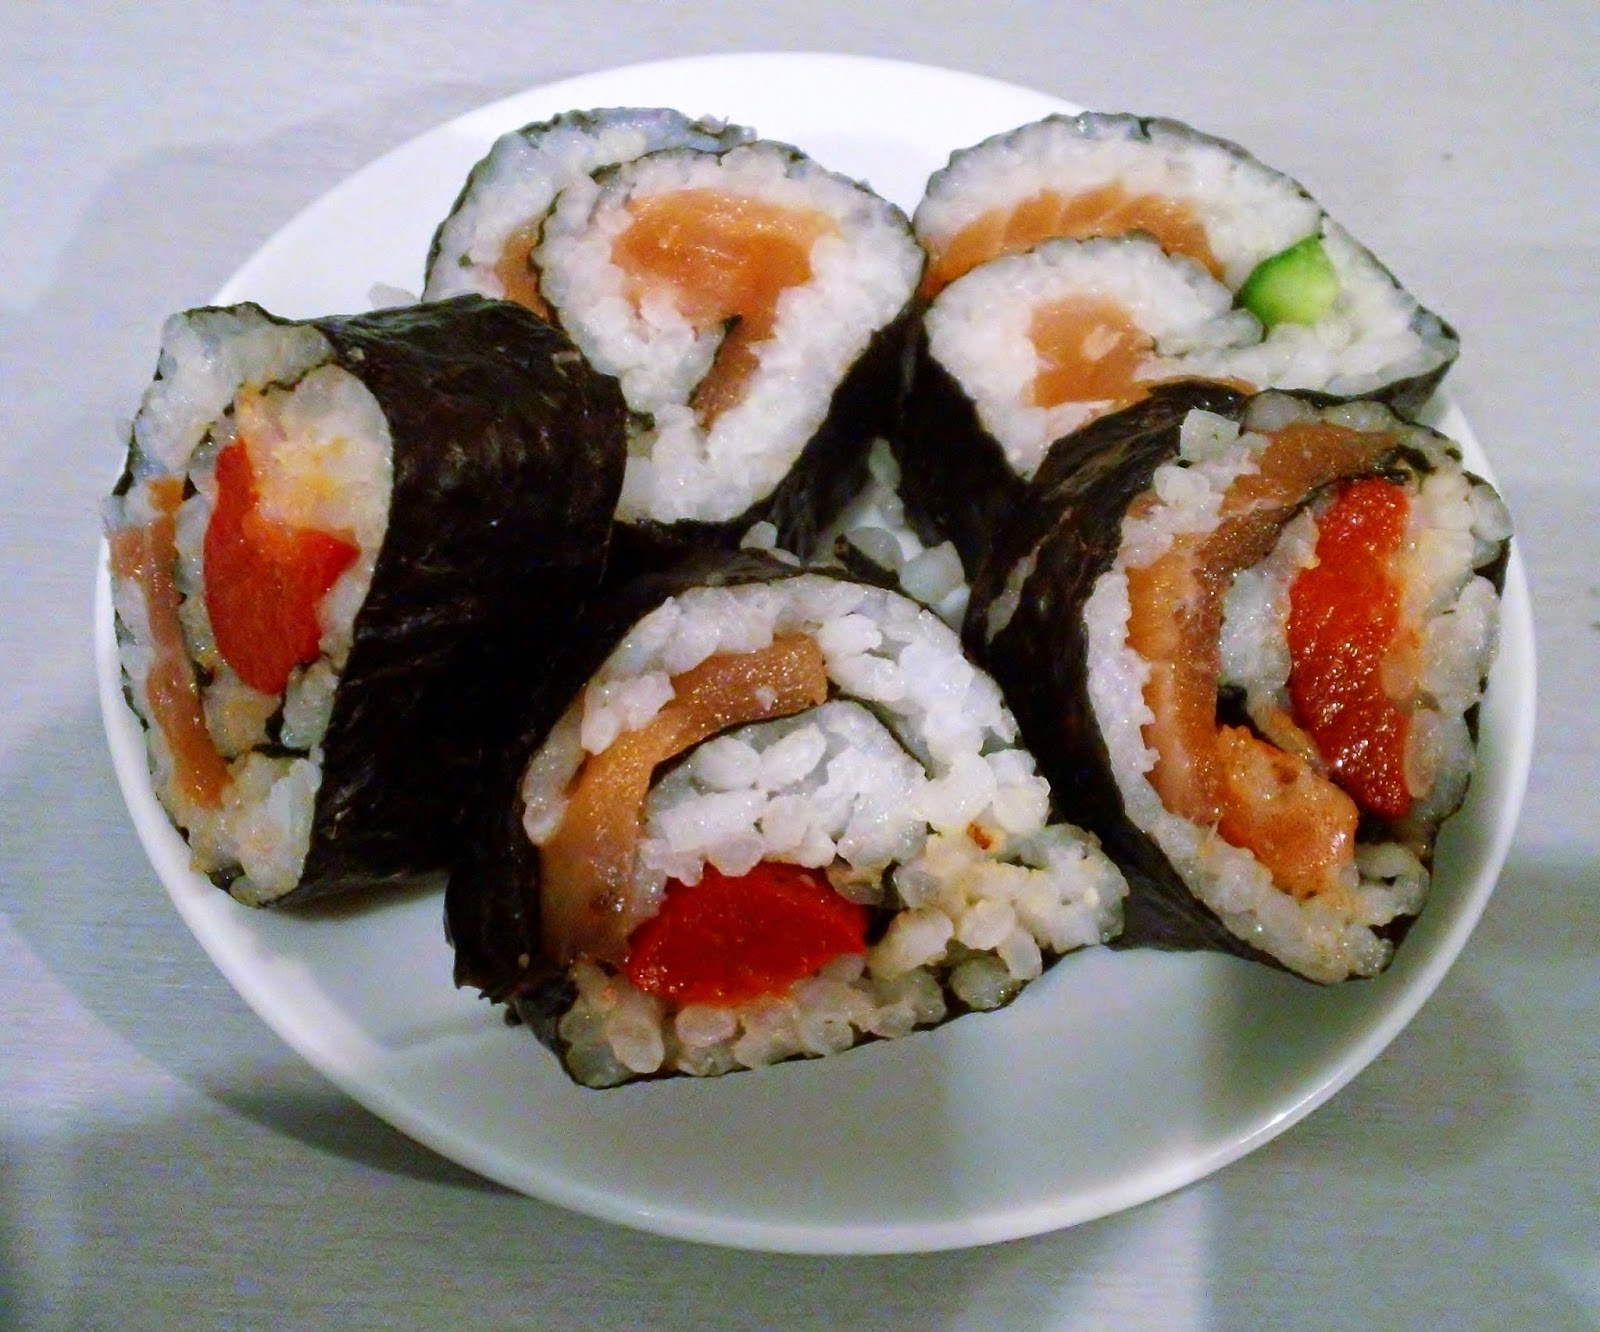 Homemade Sushi using Yutaka Sushi Kit, Yukata Sushi Kit, Salmon Sushi, Sushi at Home